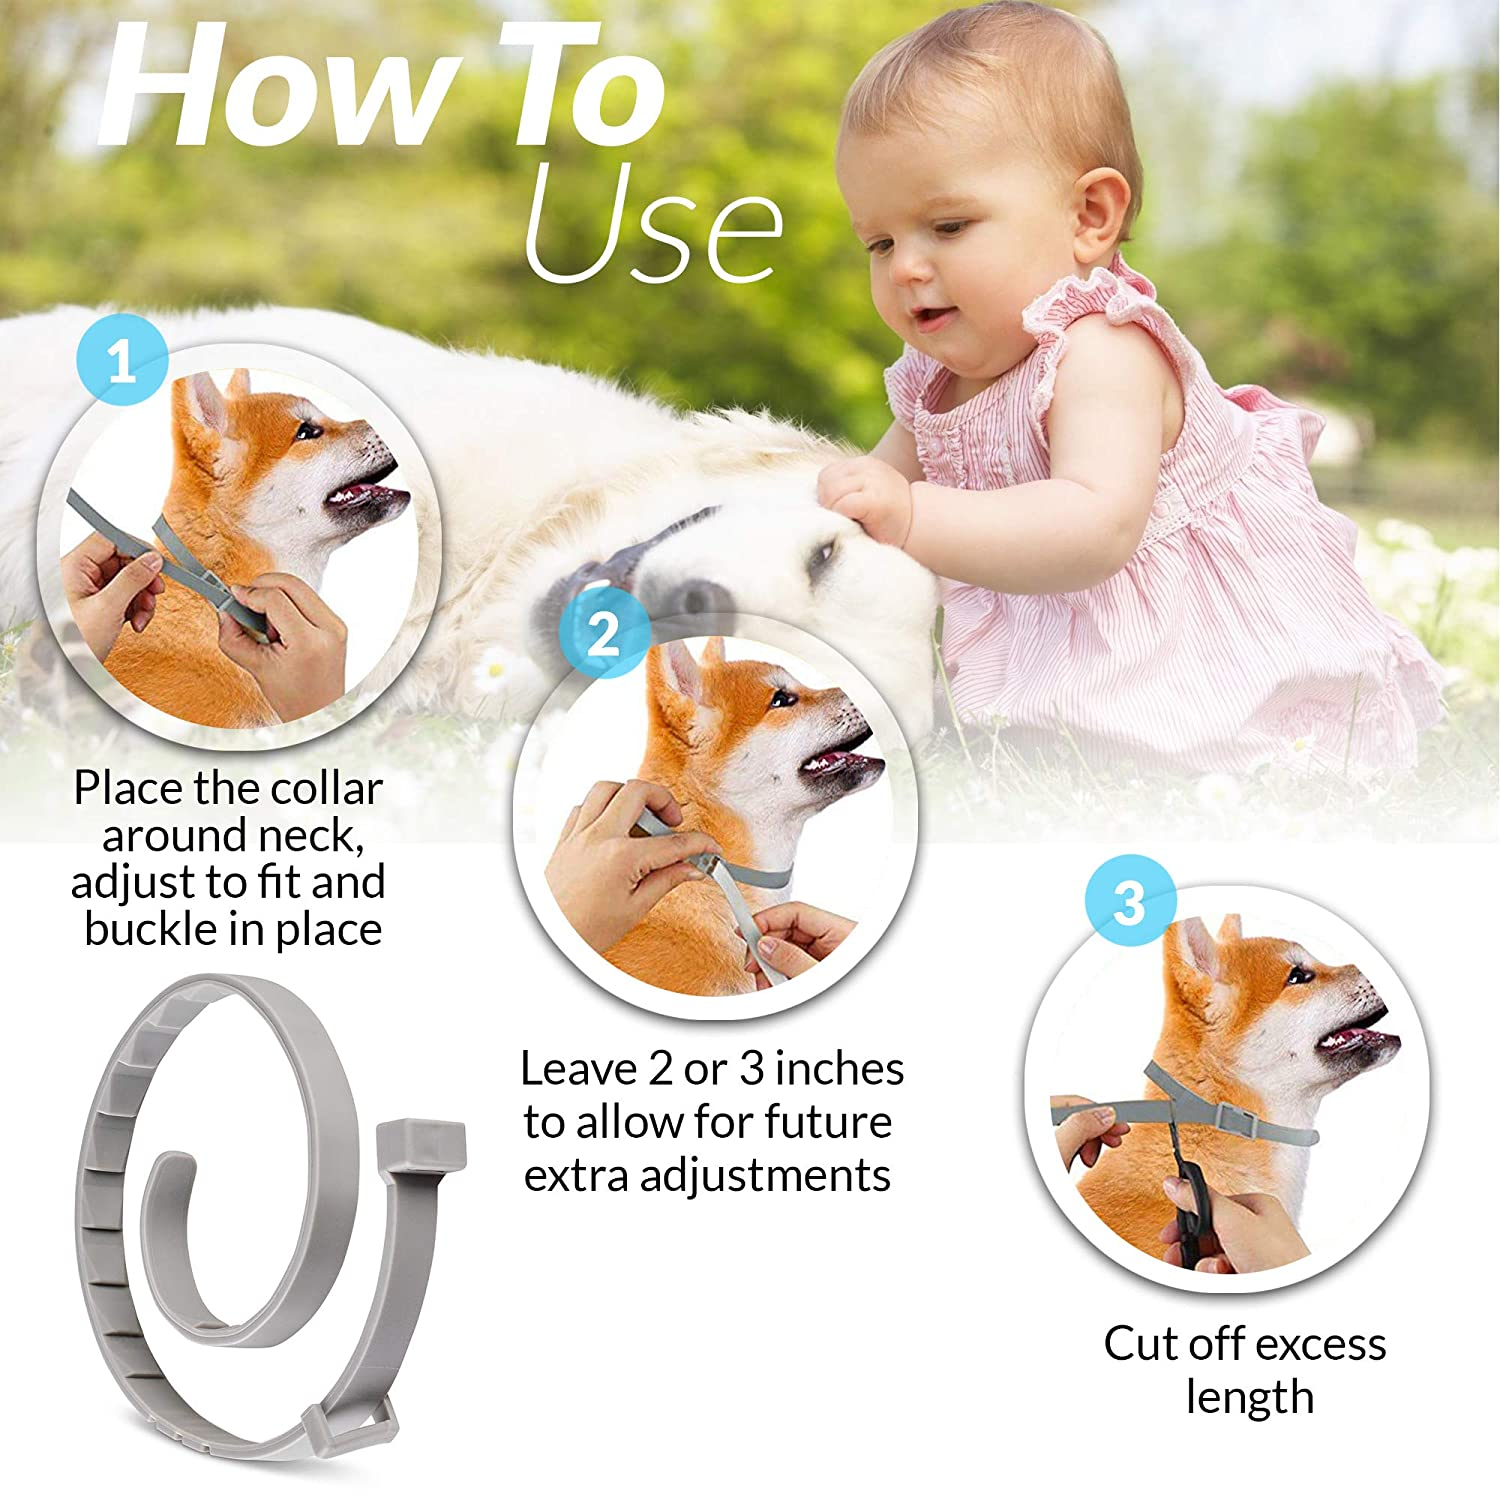 Tanness Flea and Tick Collar for Large and Small Dogs 15 Hypoallergenic and Waterproof Tick Prevention and Flea Control Dog Collar for 8 Months of Protection